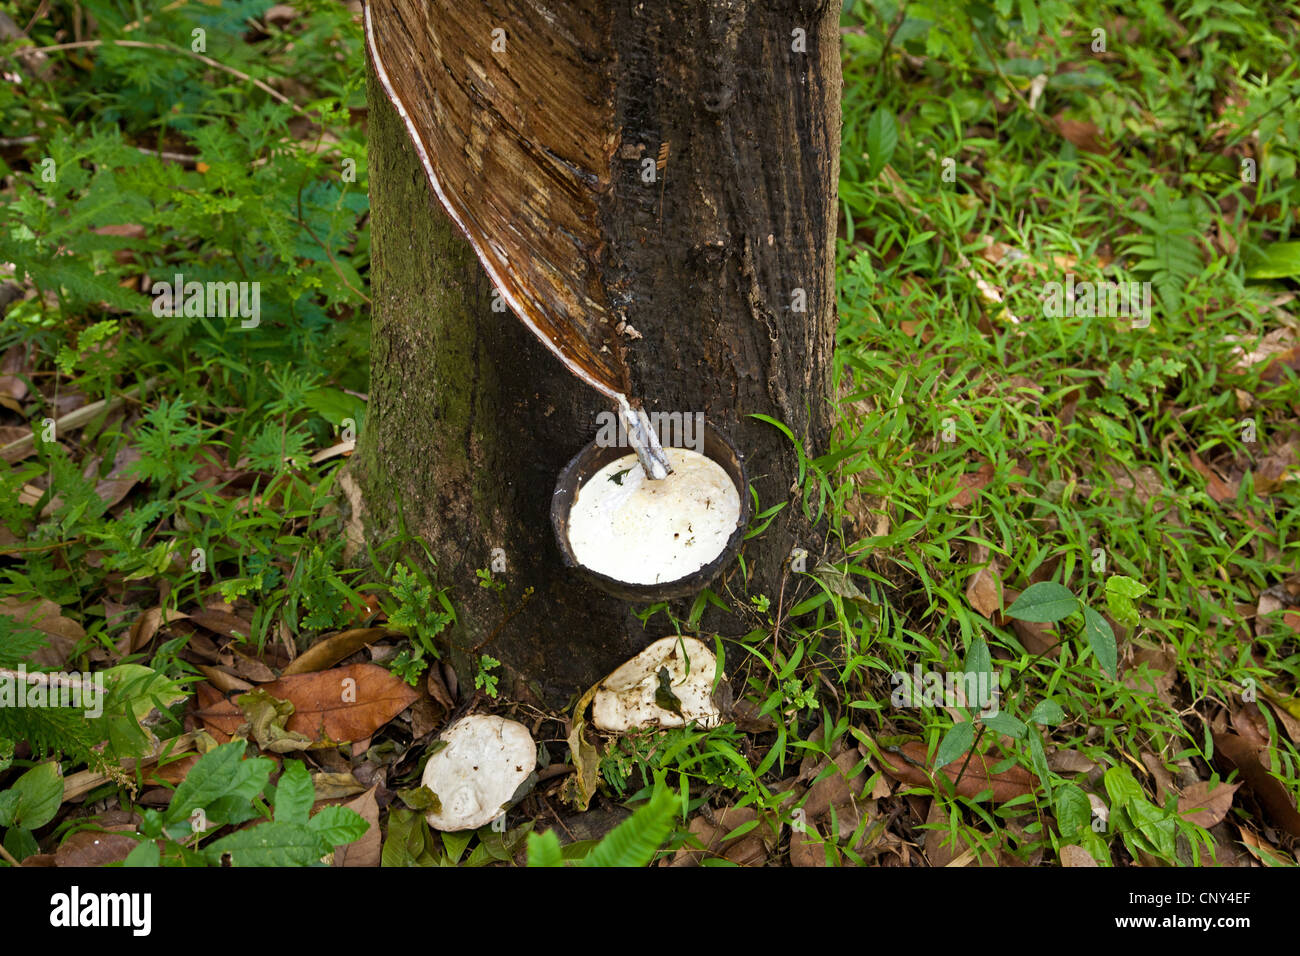 Rubber Tree Plant High Resolution Stock Photography And Images Alamy